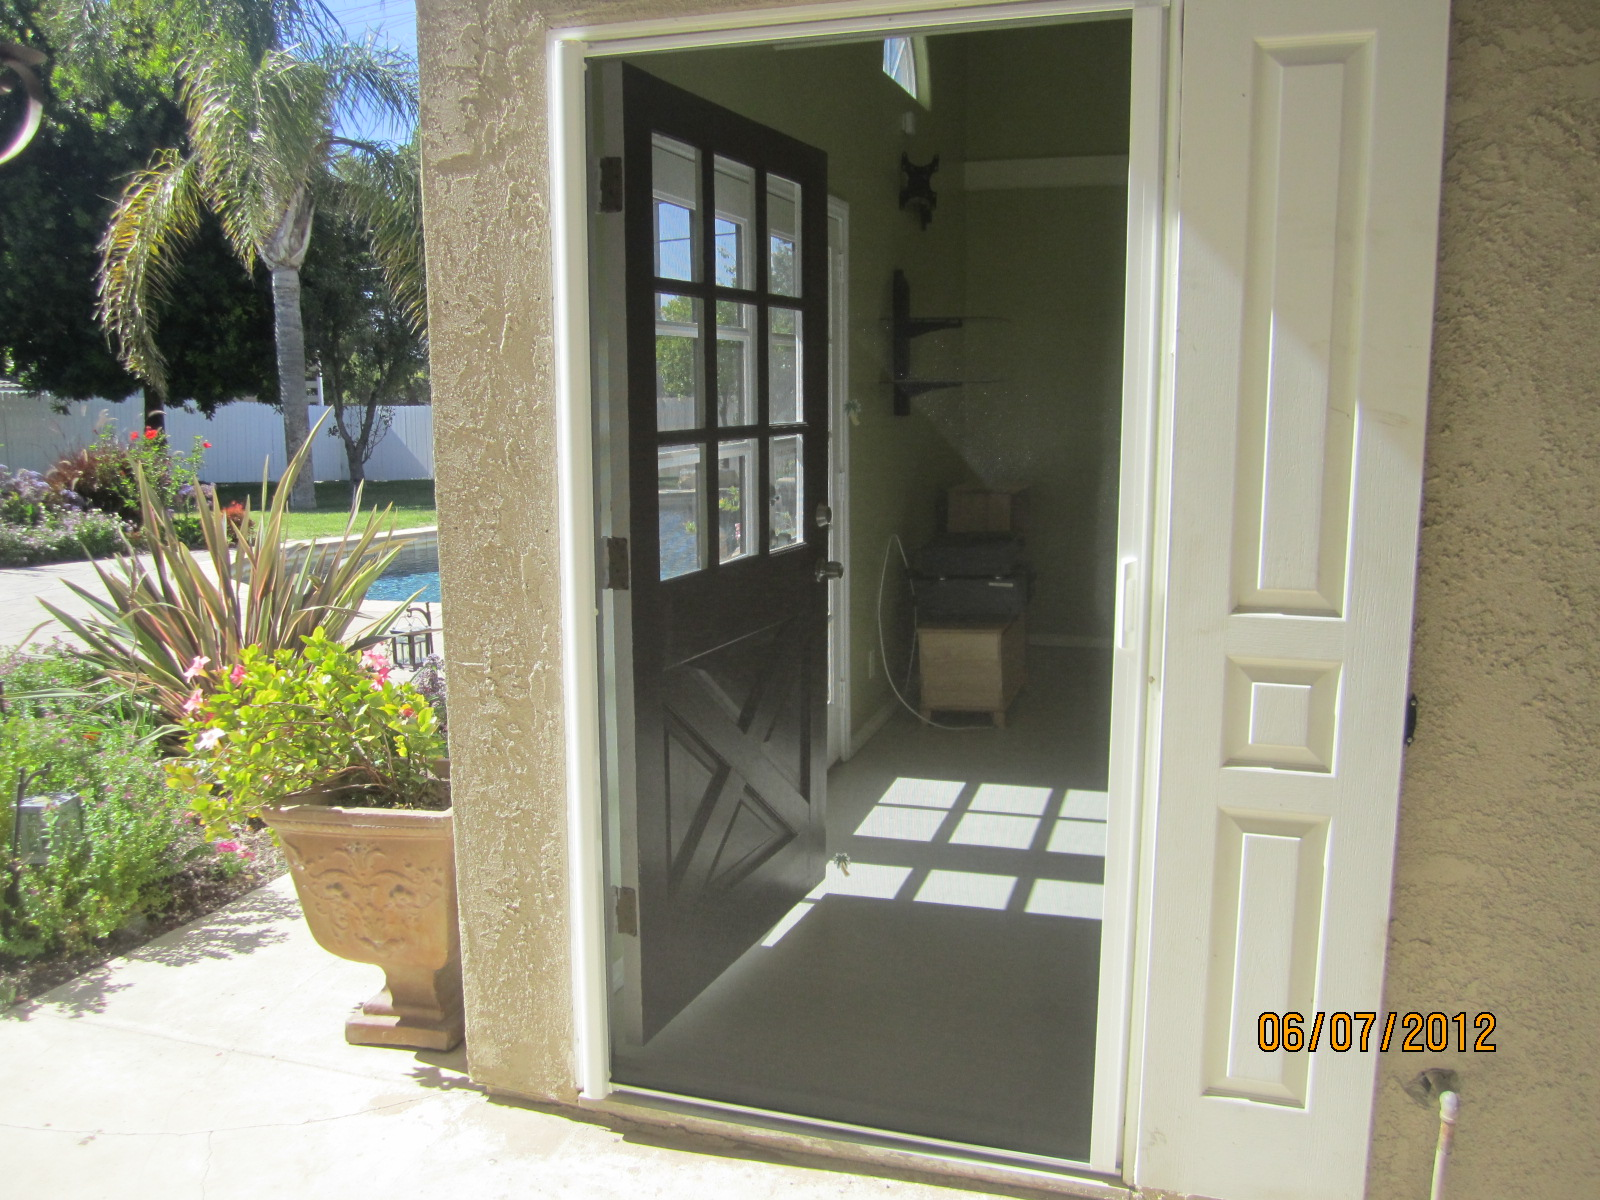 Retractable Screen Doors with black color and cream wall